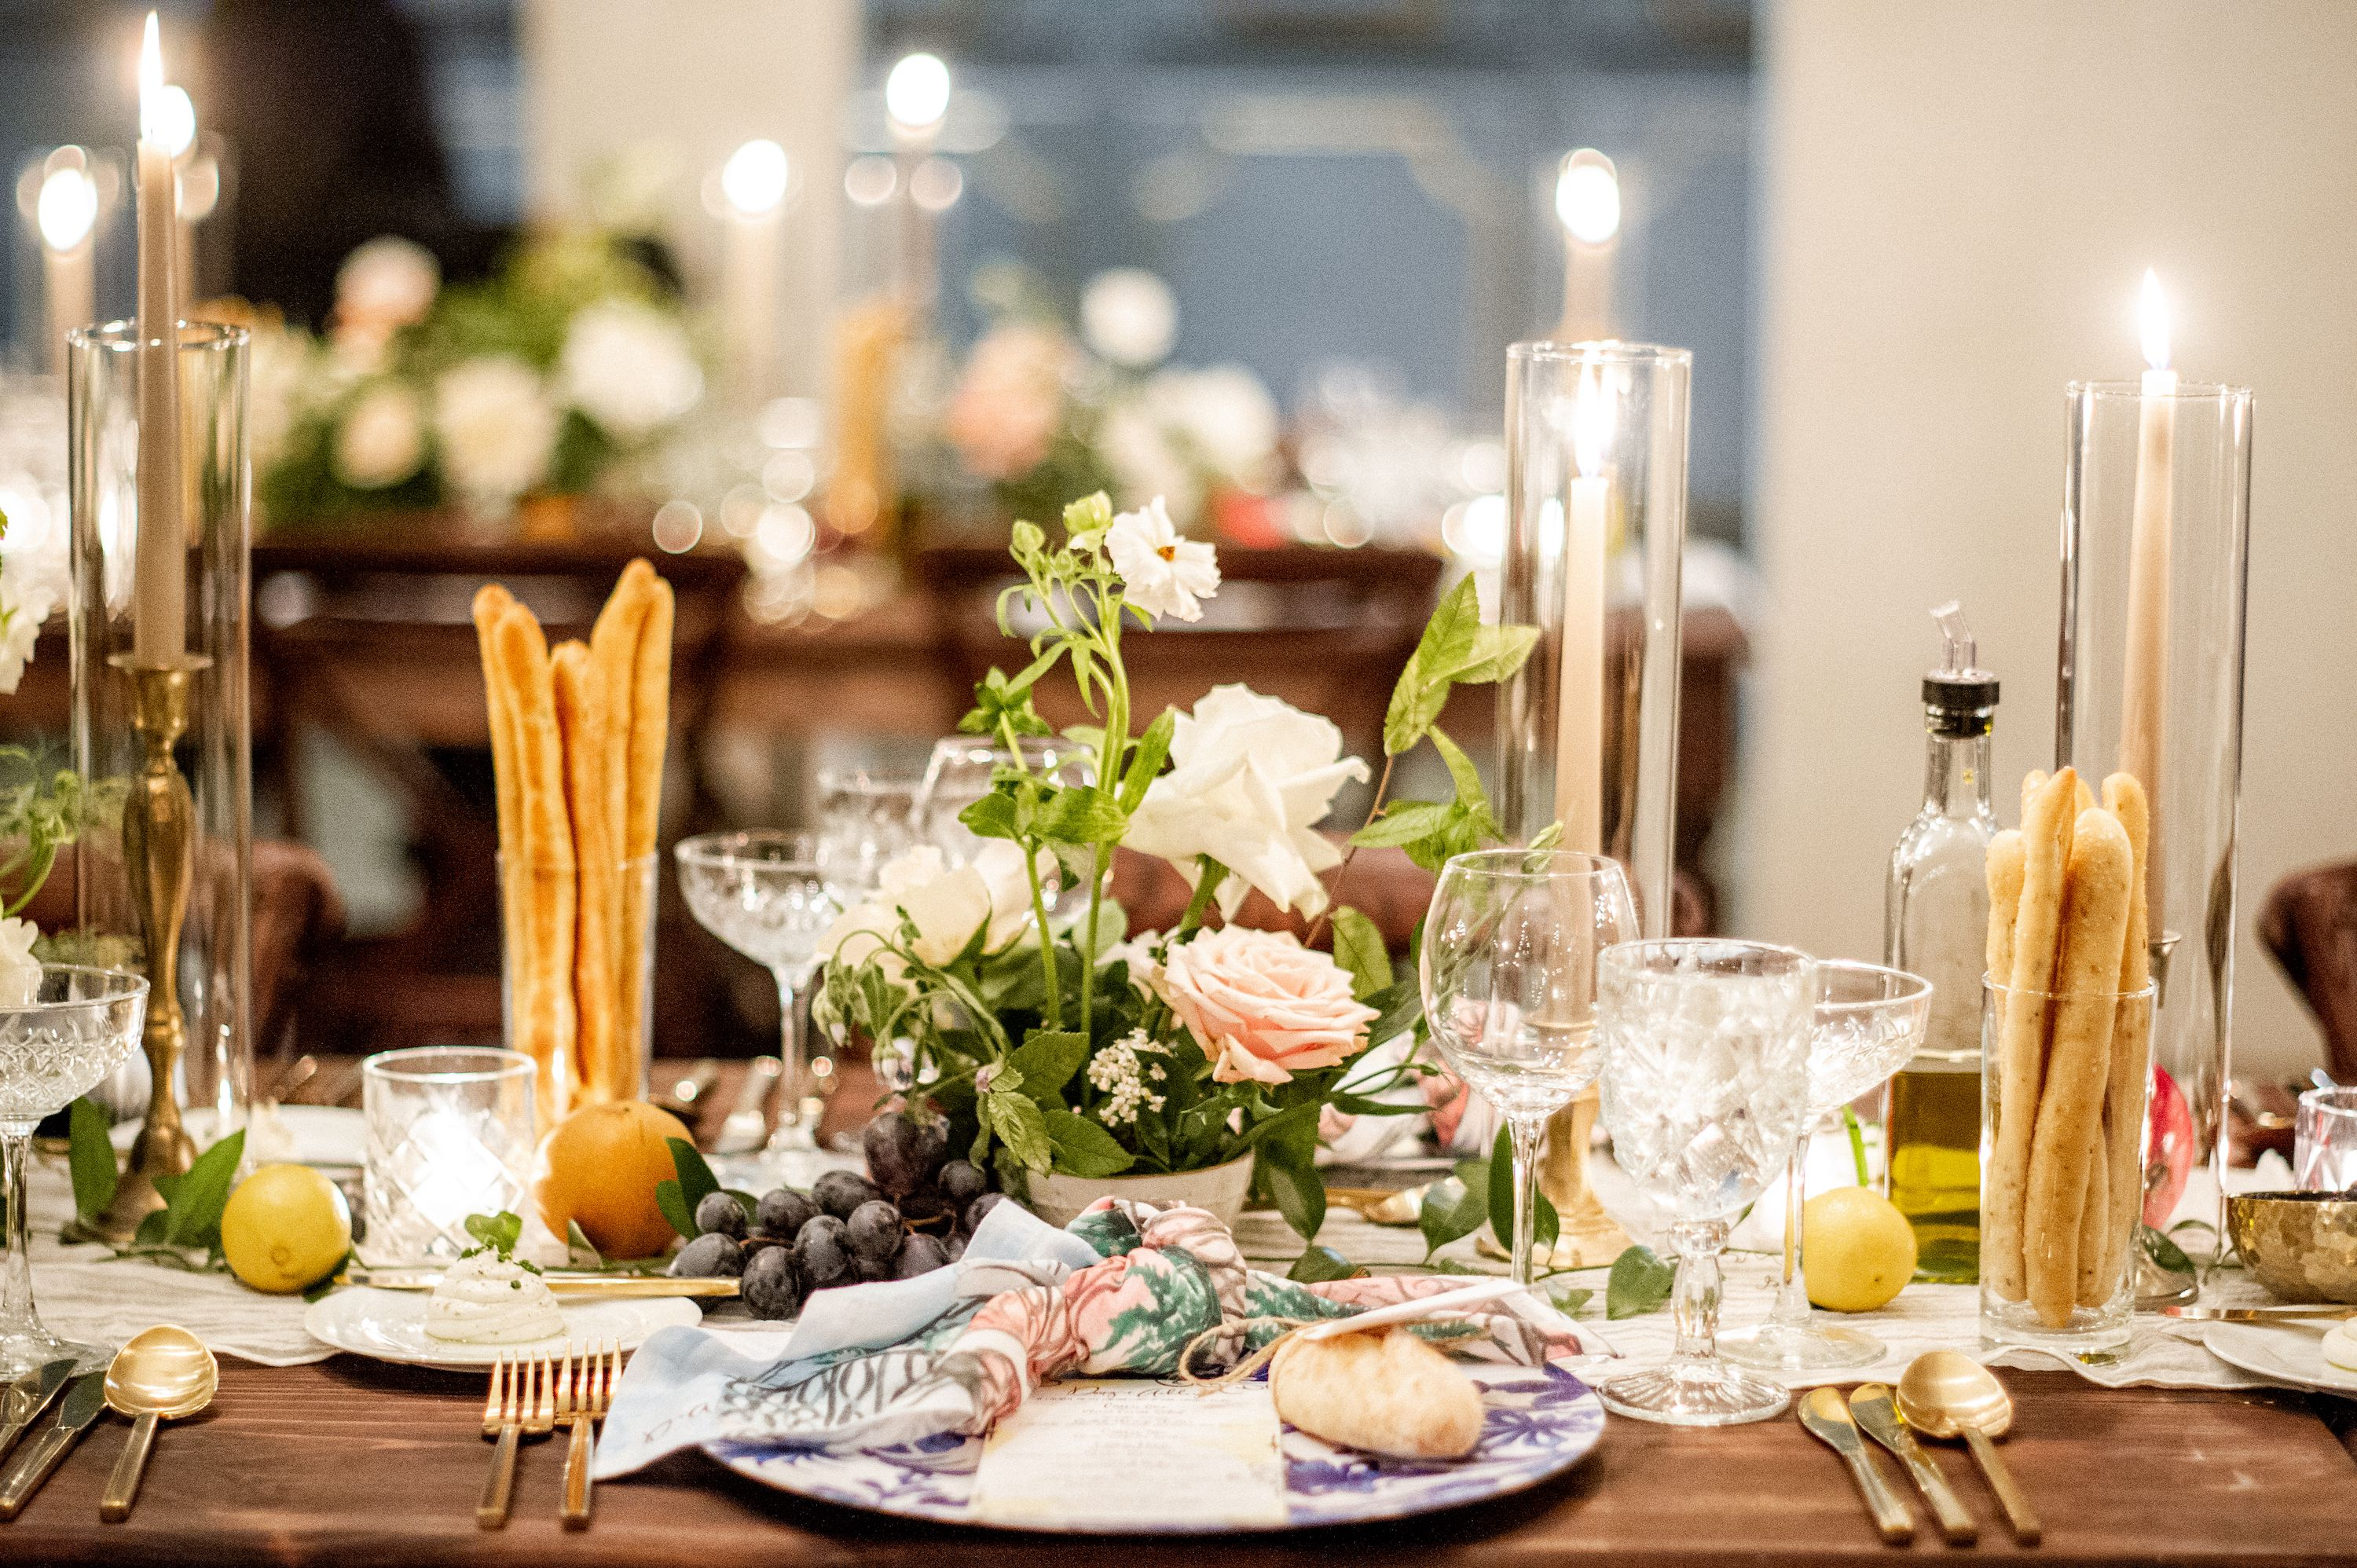 48 Centerpiece Ideas For Any Wedding Style, Dining Room Centerpiece Ideas Candles